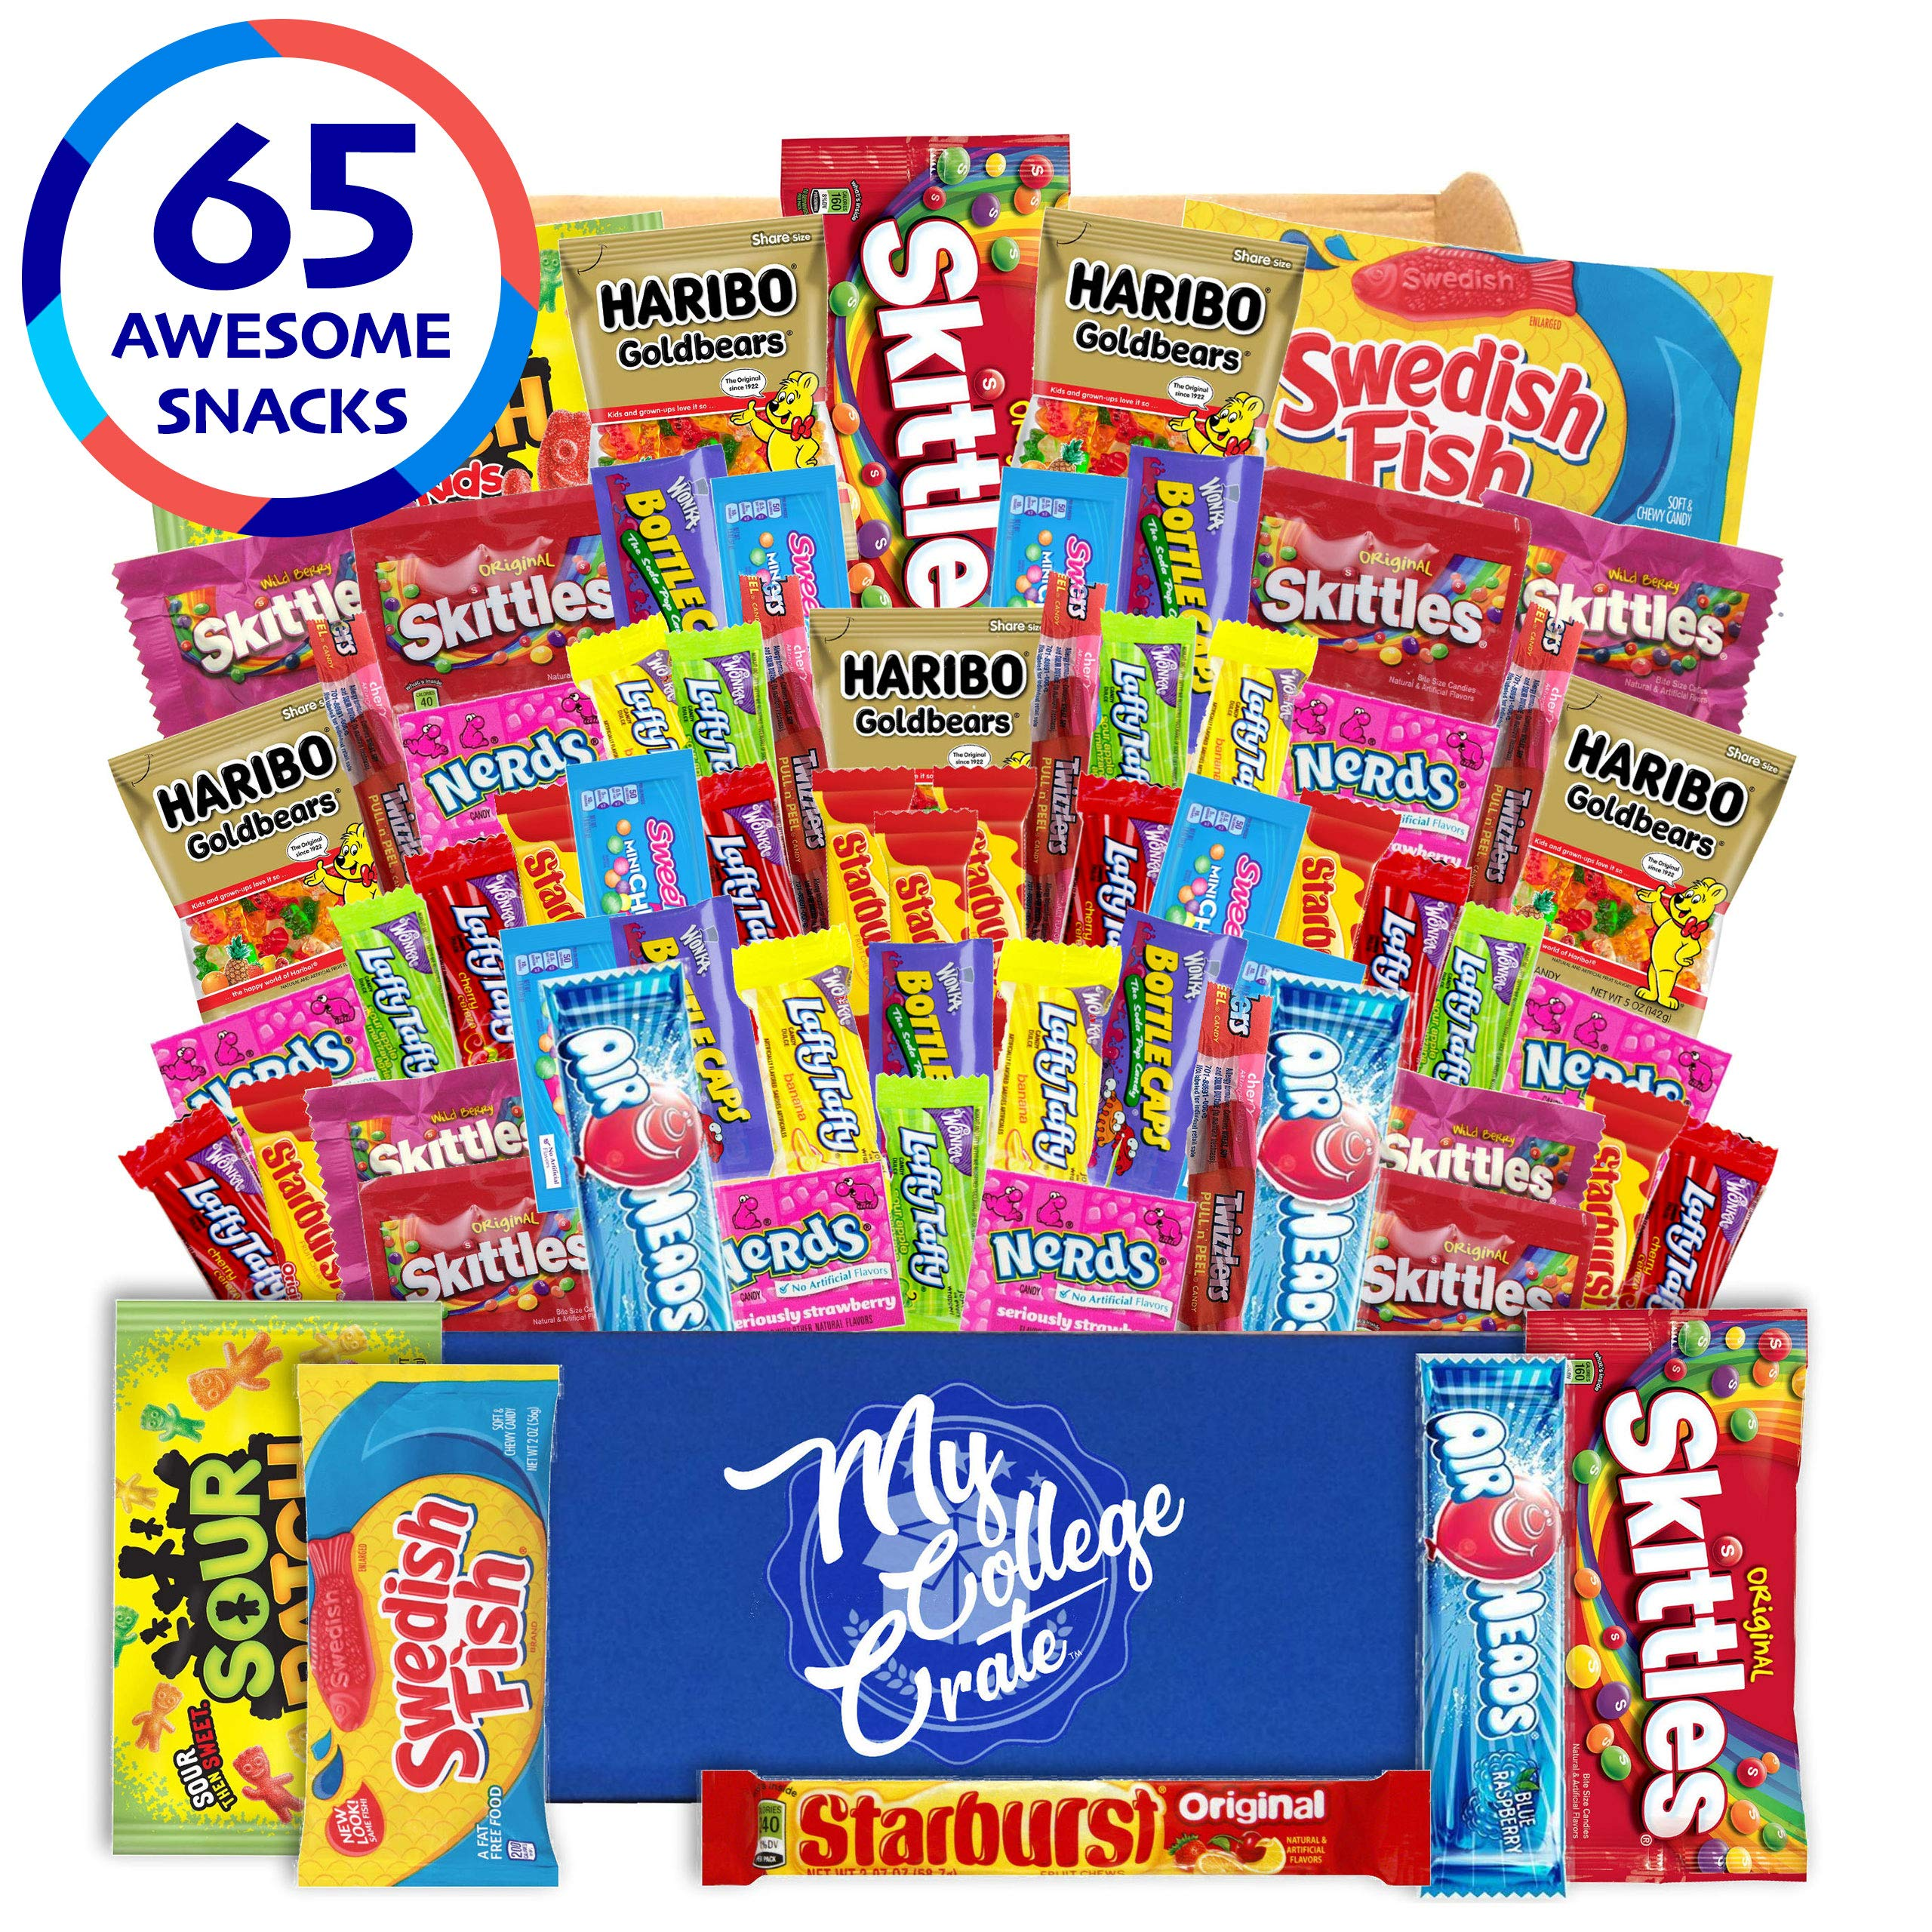 My College Crate Candy & Snack Box Ultimate Snack Care Package for College Students - 65 piece Includes 10 Full Size Candies, Candy Variety Pack, Starburst, Skittles, Sour Patch & More